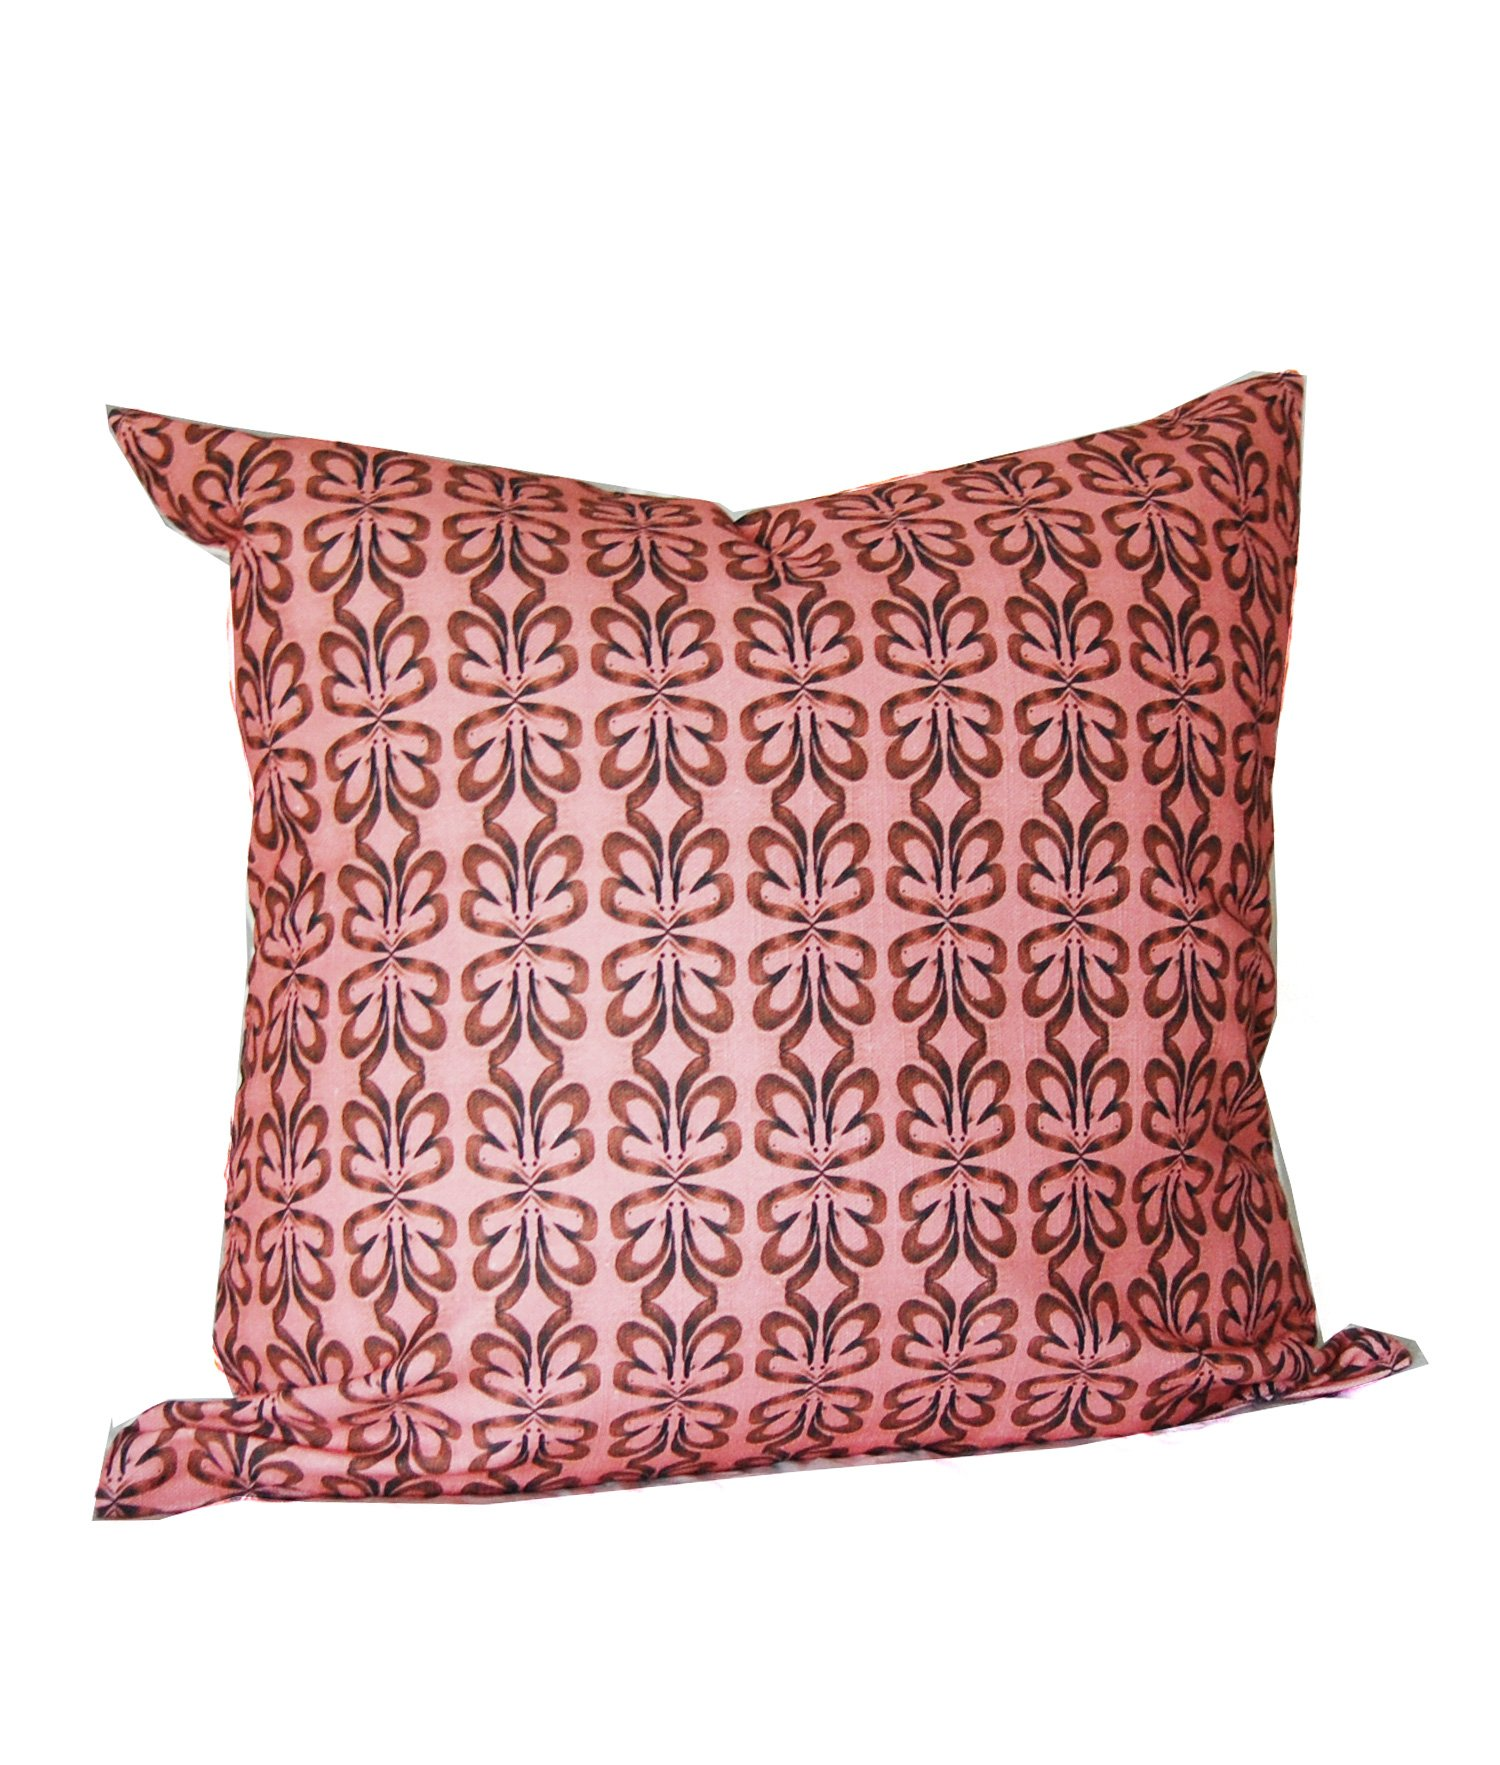 pink and brown cloverleaf geometric pattern throw pillow